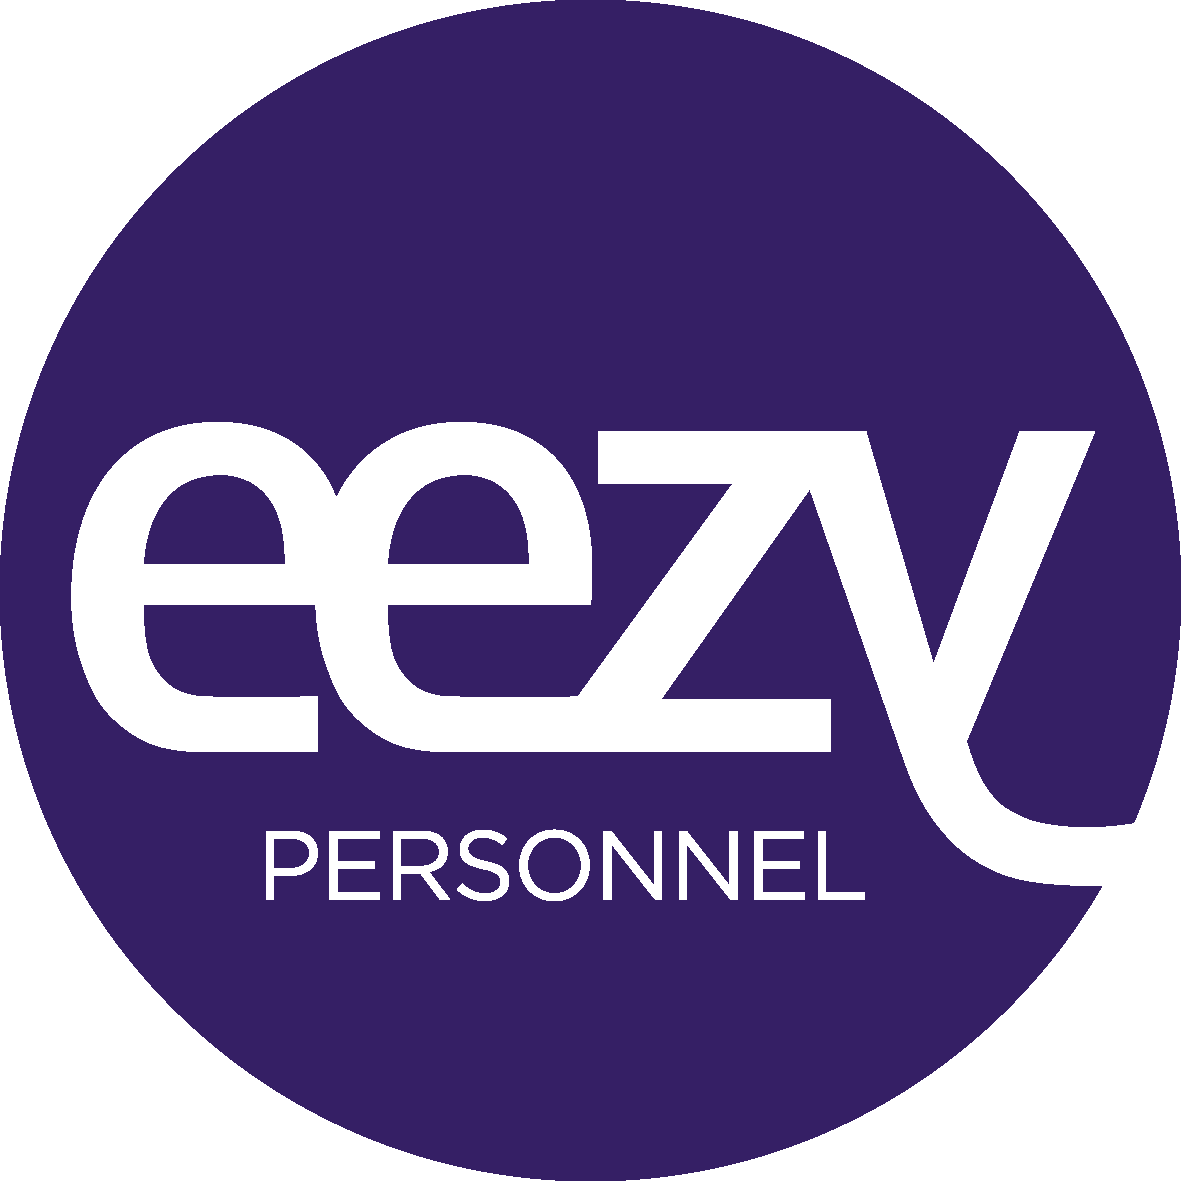 logo: Eezy Personnel Oy